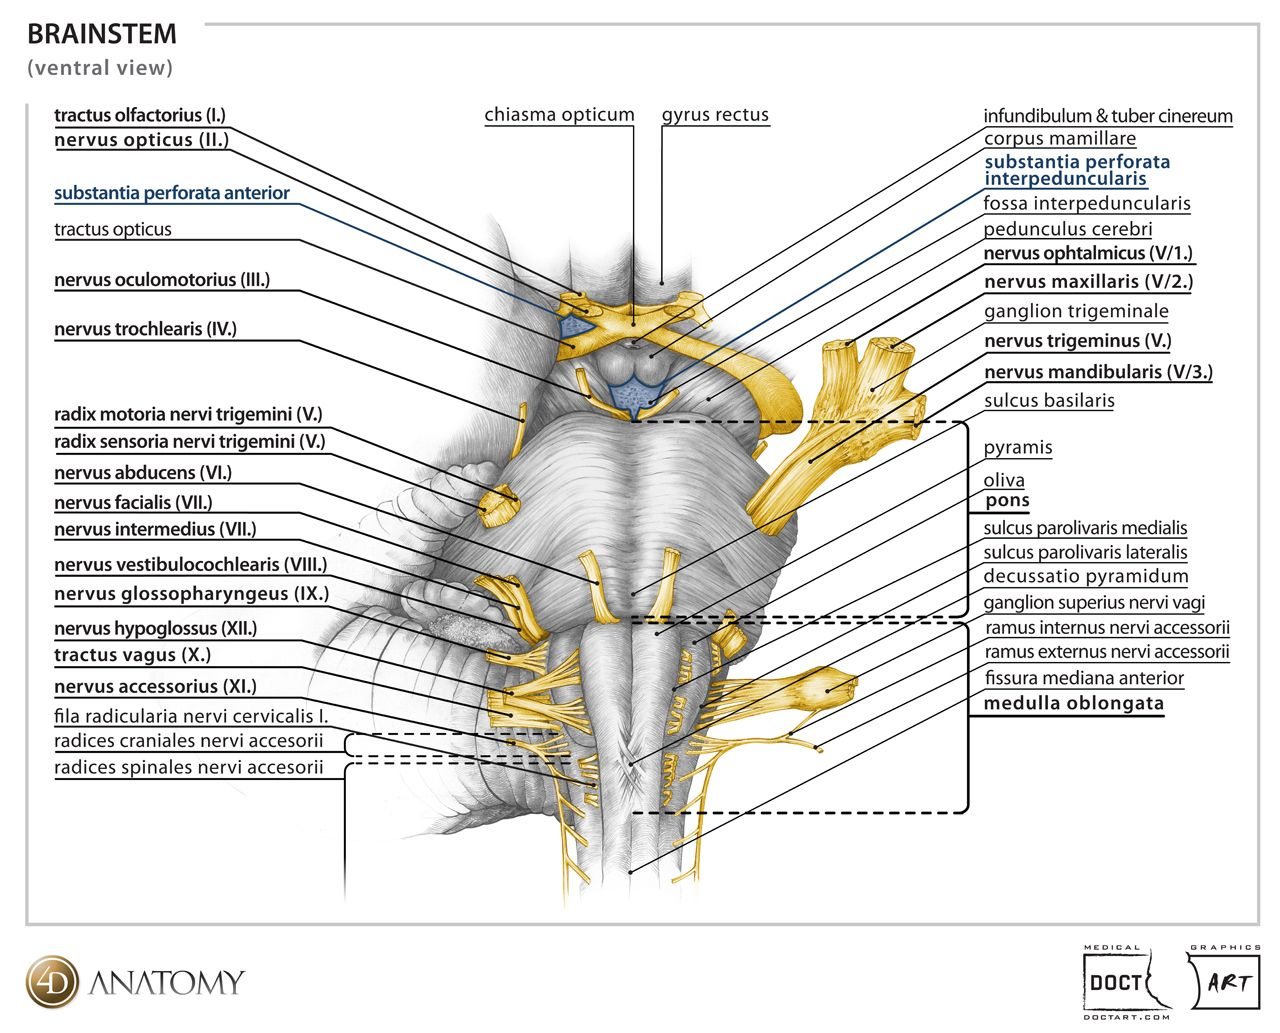 4D Anatomy cranial nerves anatomy | Biology | Pinterest | Cranial ...